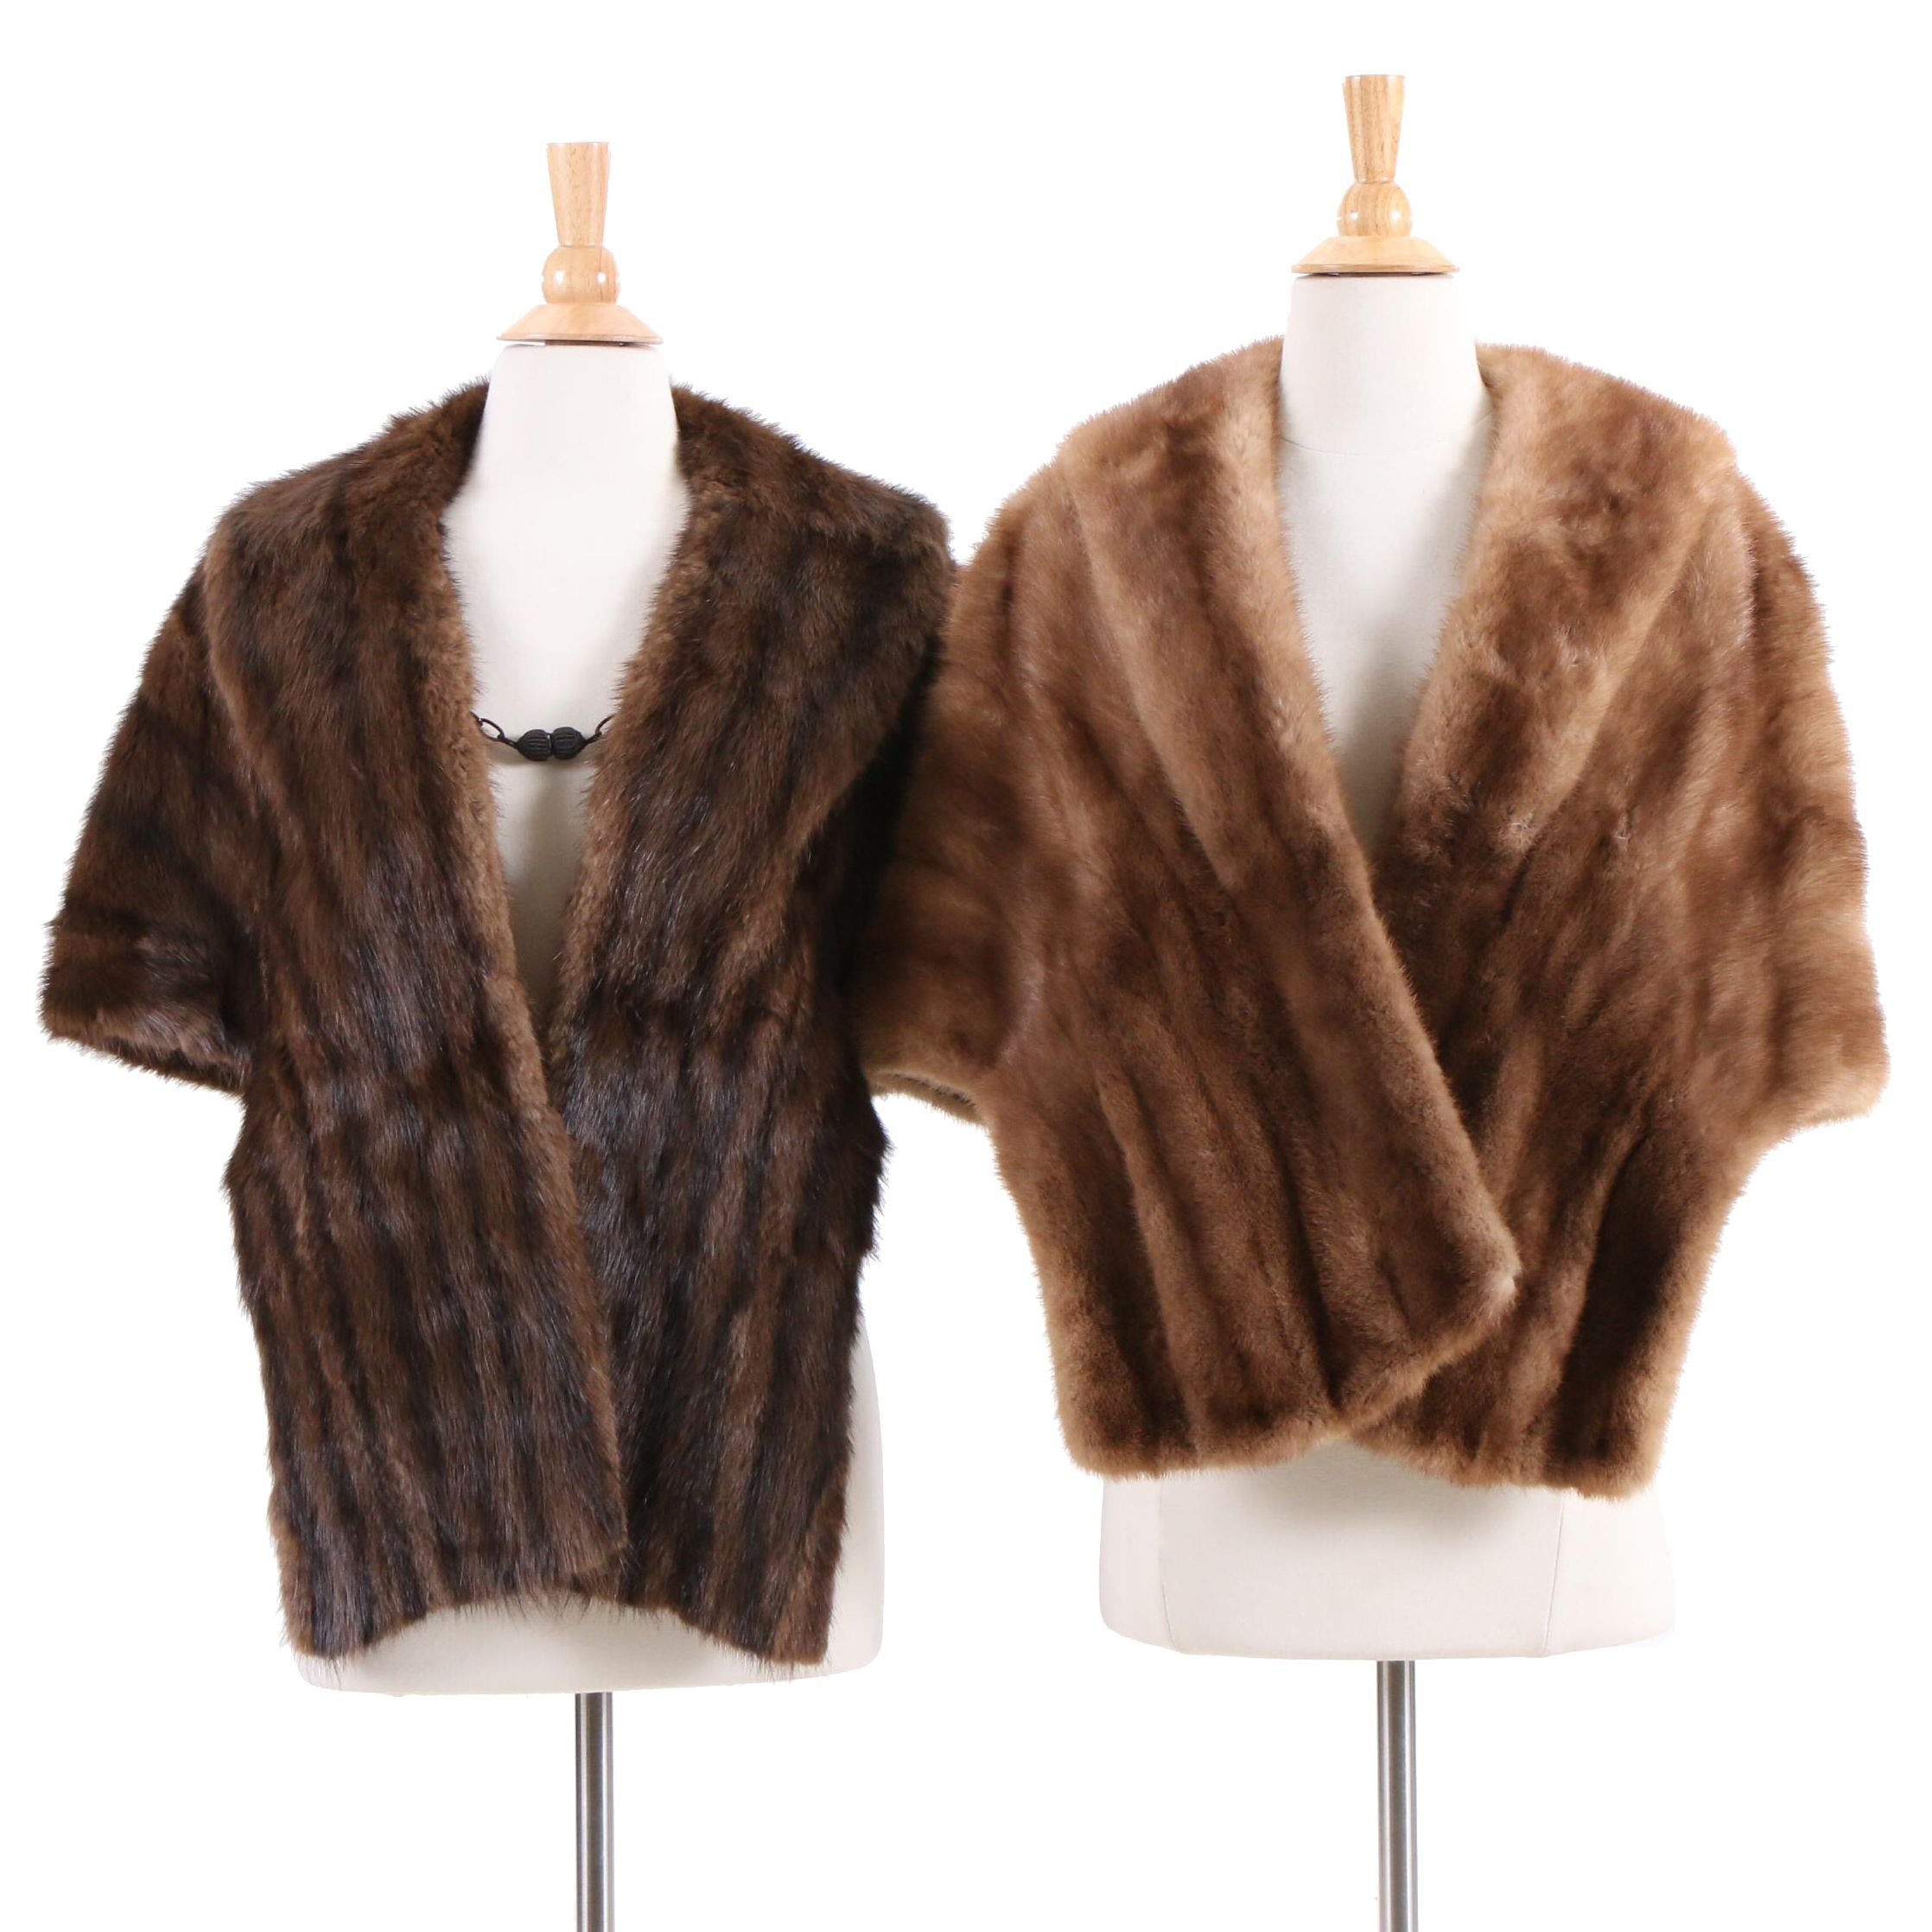 Nat Hyman Autumn Haze Mink Fur Stole and Dyed Muskrat Fur Stole